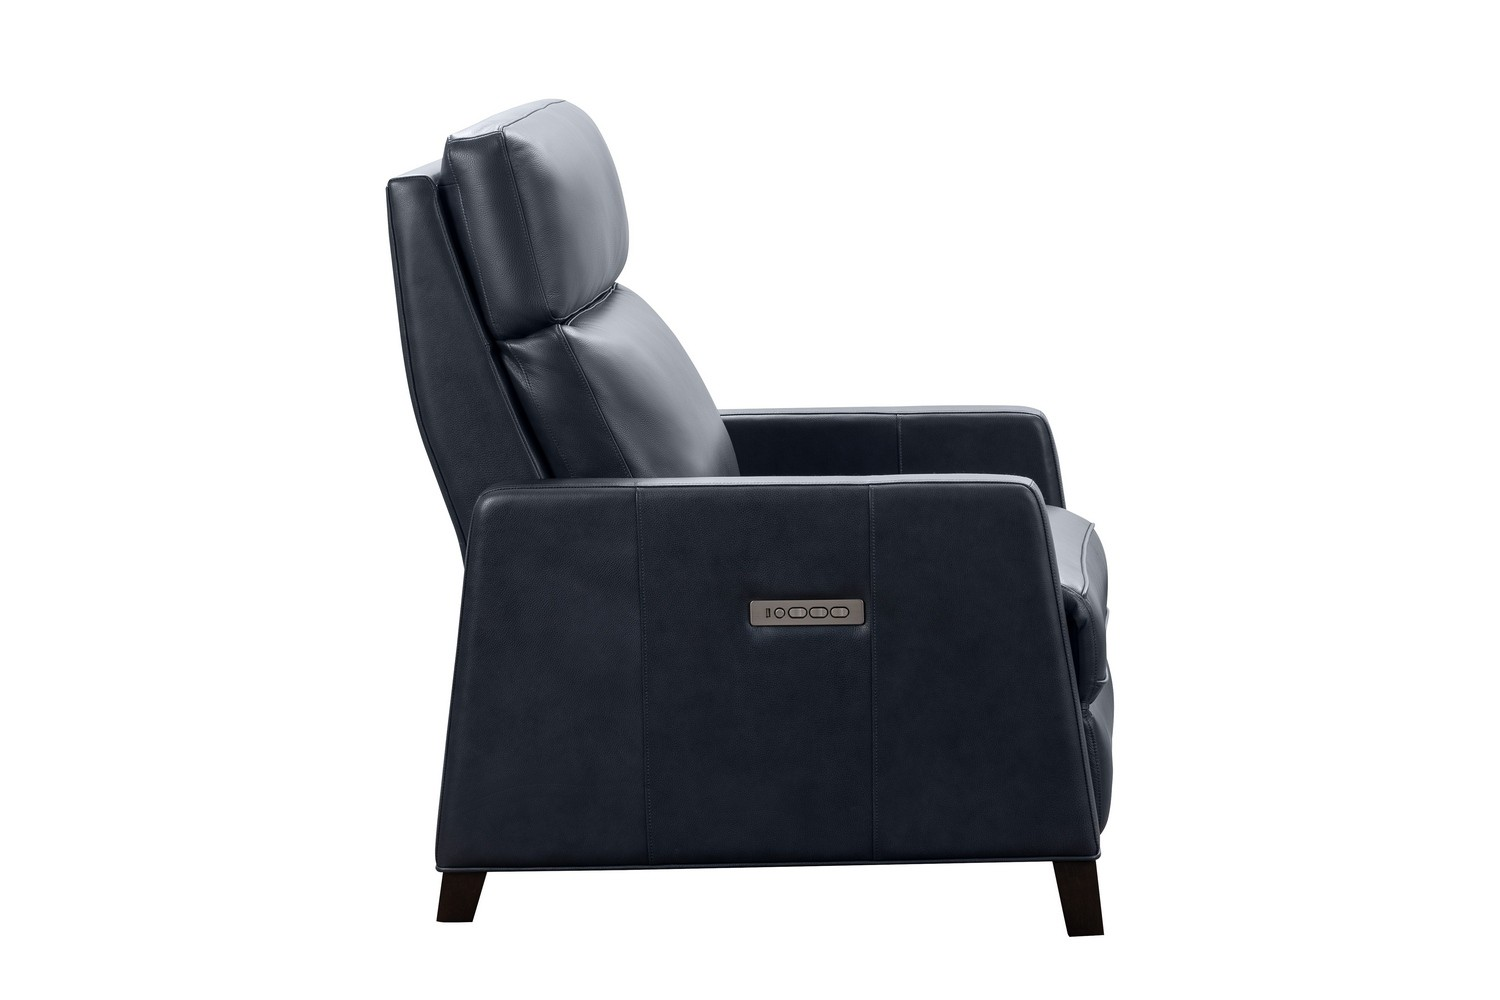 Barcalounger James Zero Gravity Power Recliner Chair with Power Head Rest and Lumbar - Barone Navy Blue/All Leather